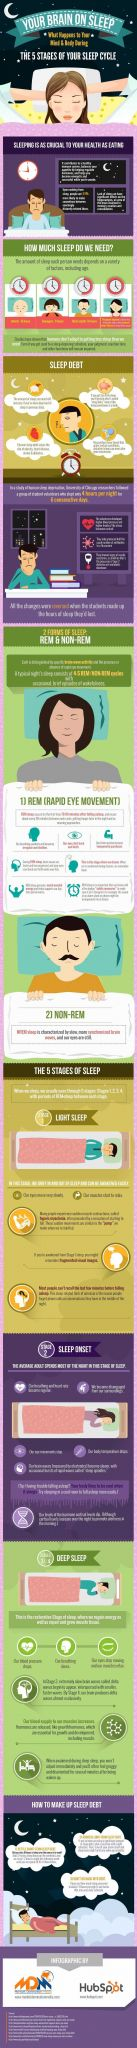 Sleep Hygiene Worksheet Also 12 Best Sleeping Reme S Images On Pinterest